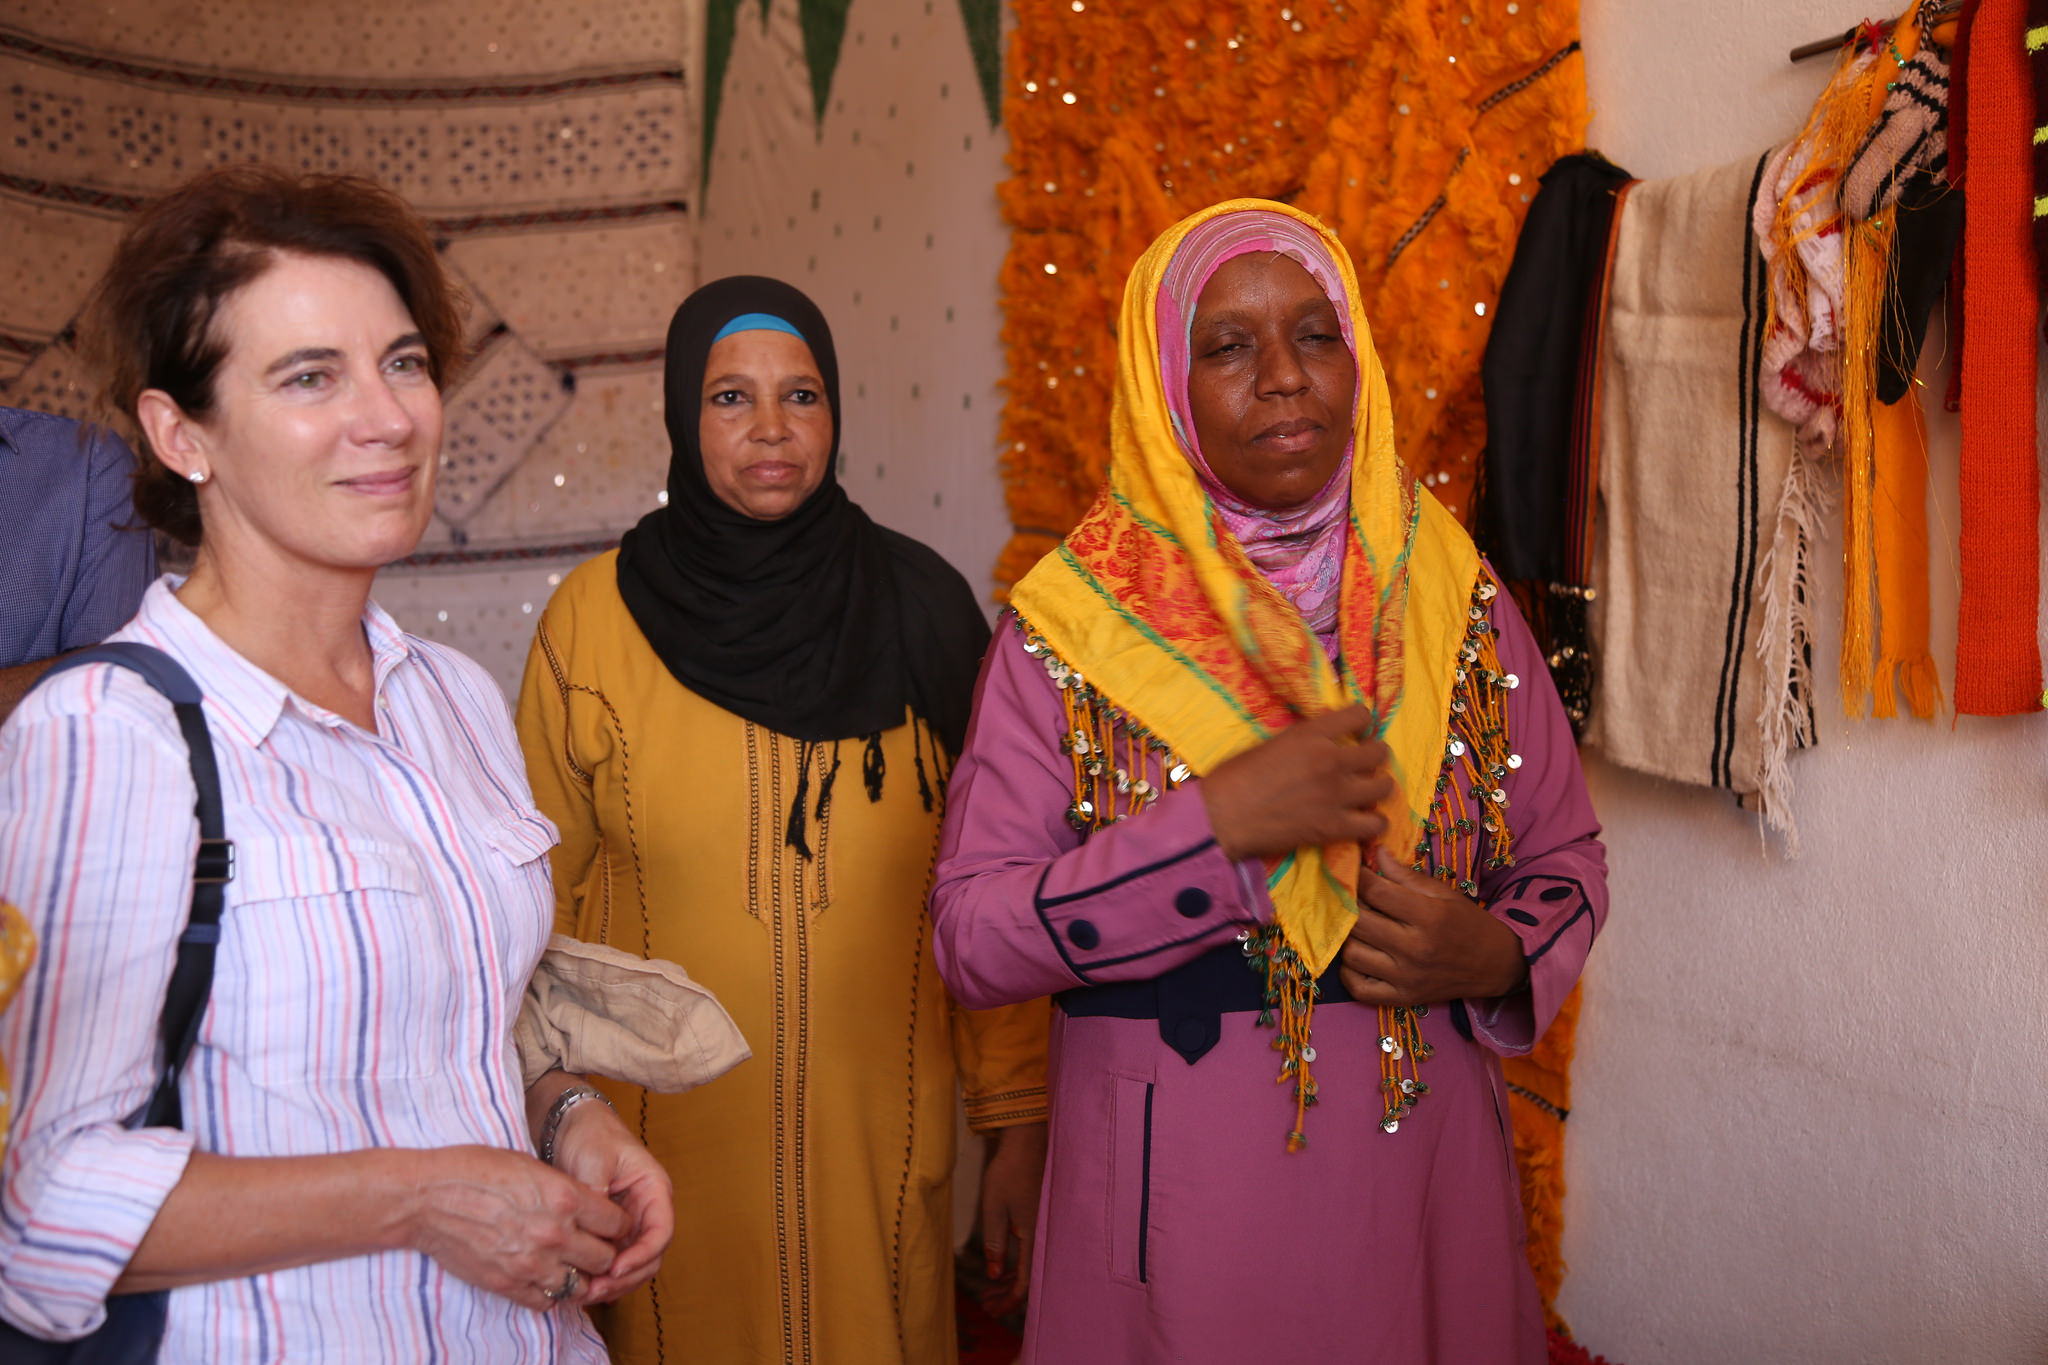 Then-Manager of the Adaptation Fund, Marcia Levaggi (pictured left) conducted a project field visit in Morocco with implementing entity Agence pour le Développement Agricole (ADA) and executing entity Agence Nationale pour le Development de Zones Oasiennes et de l'Arganier (ANDZOA).